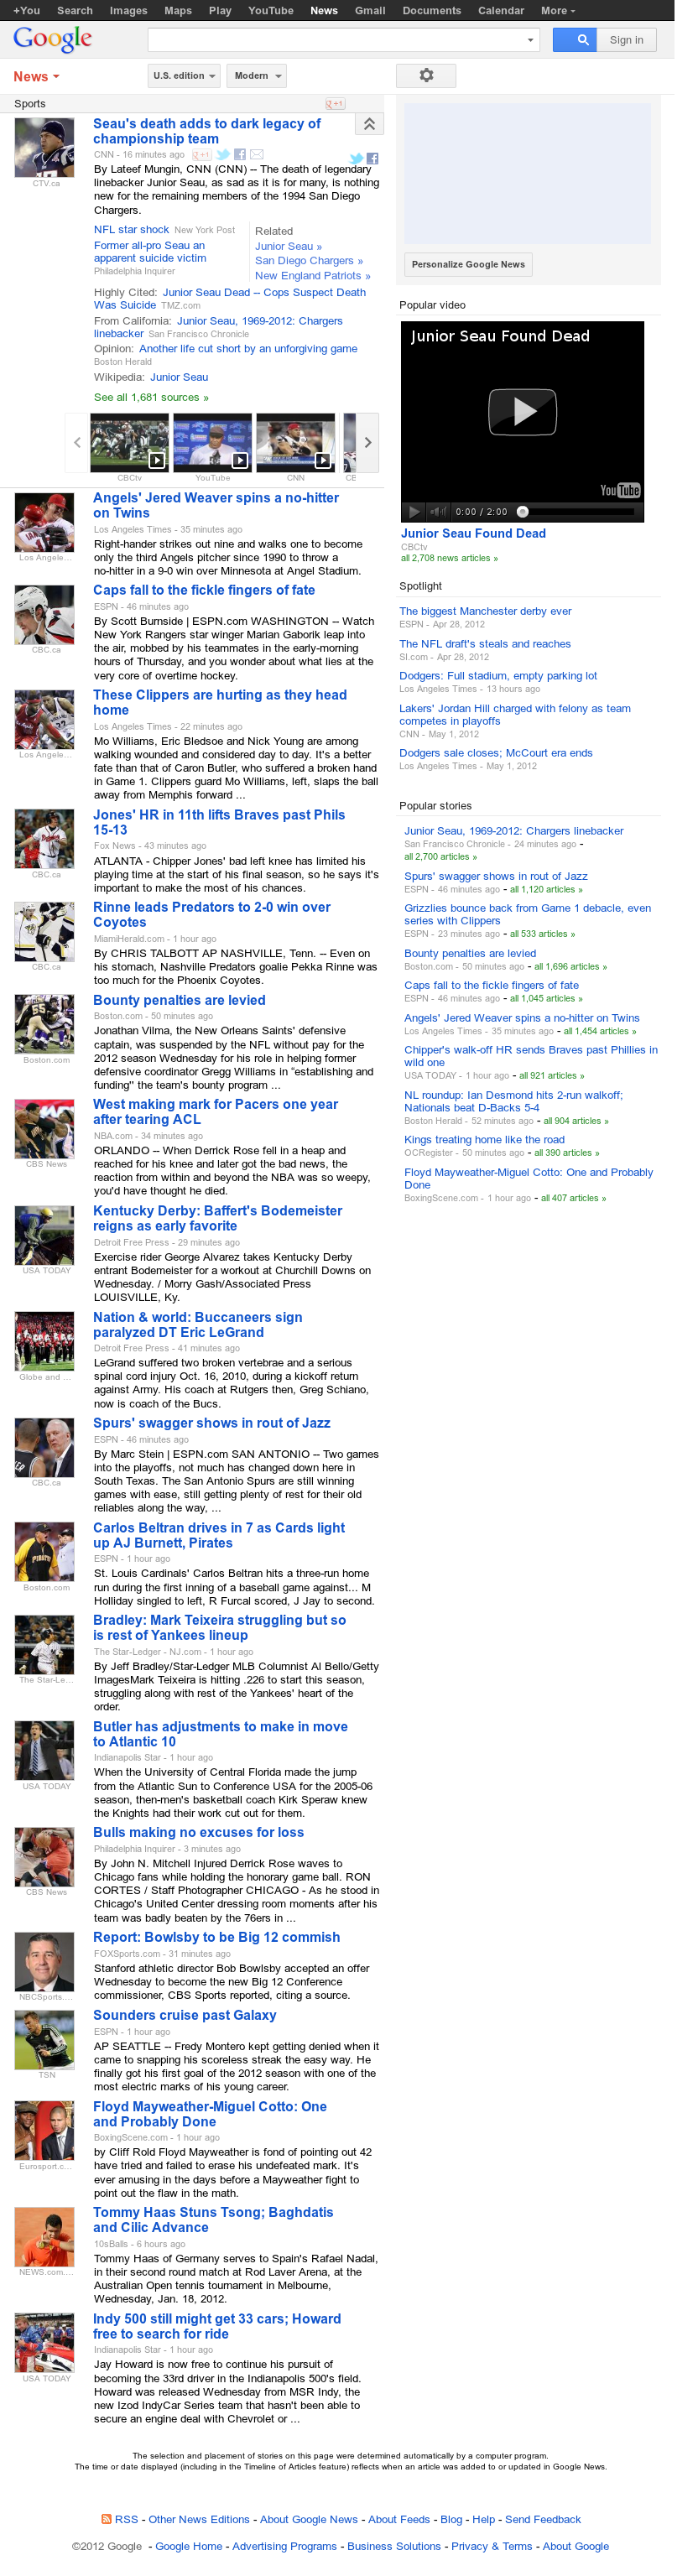 Google News: Sports at Thursday May 3, 2012, 7:06 a.m. UTC